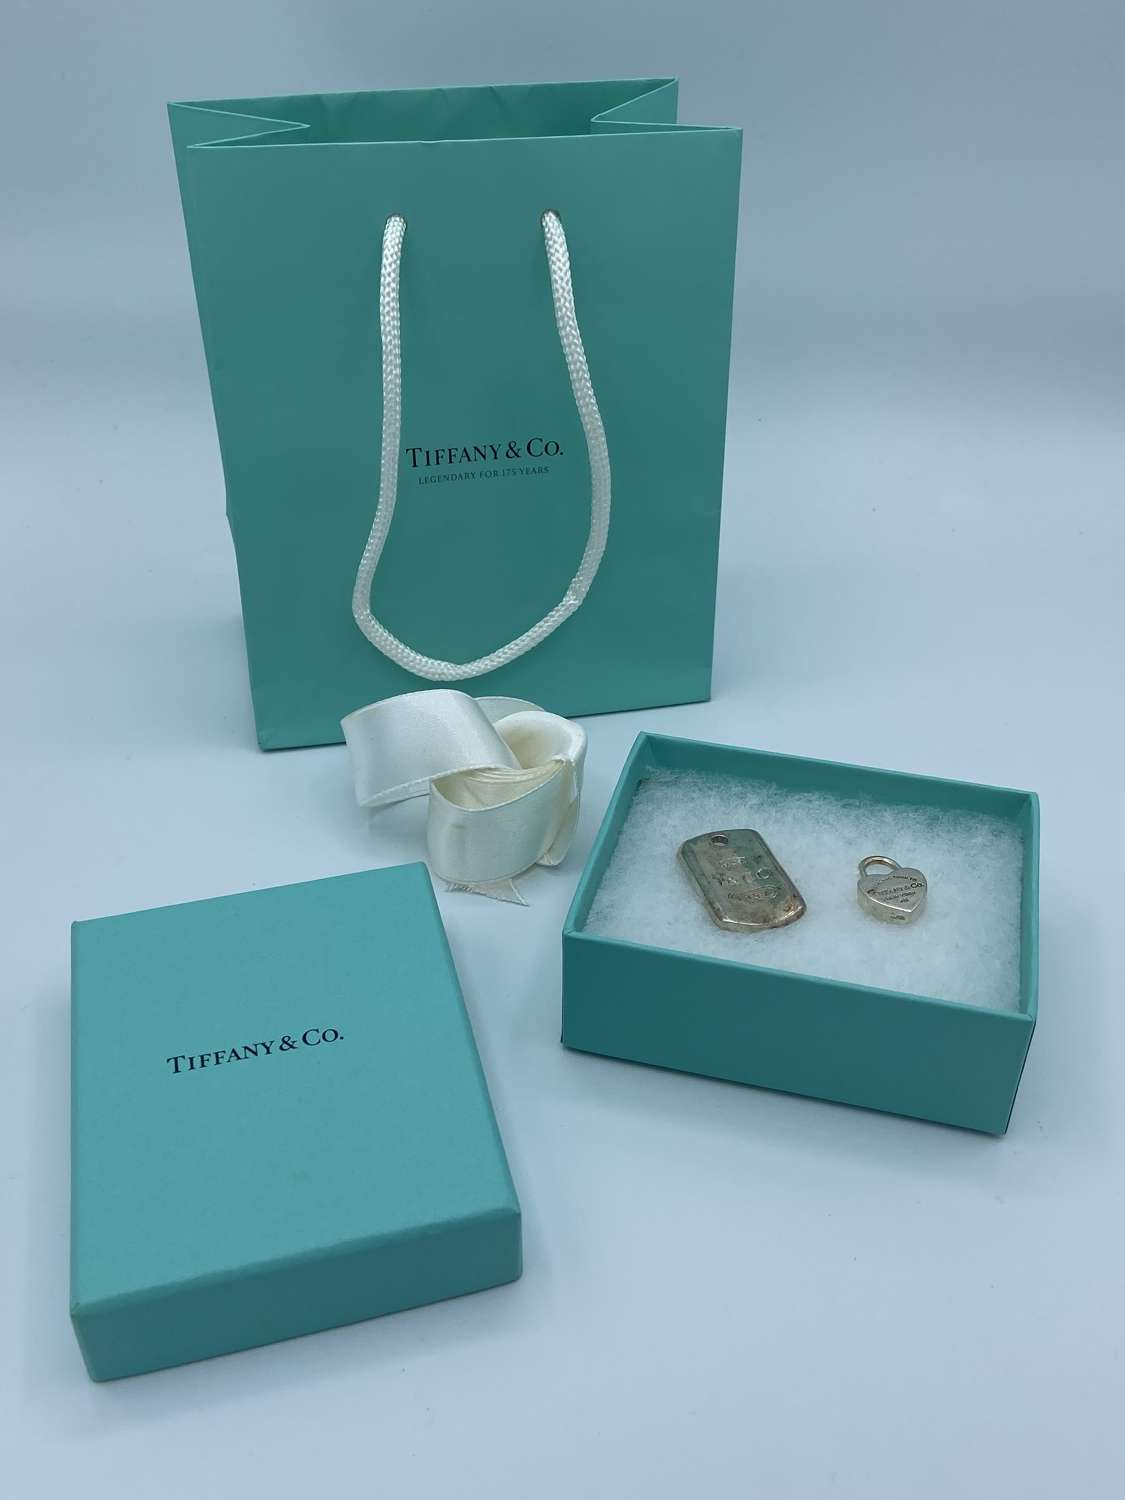 Tiffany & Co 925 Silver Padlock & Sterling Silver Dog Tag In Packaging